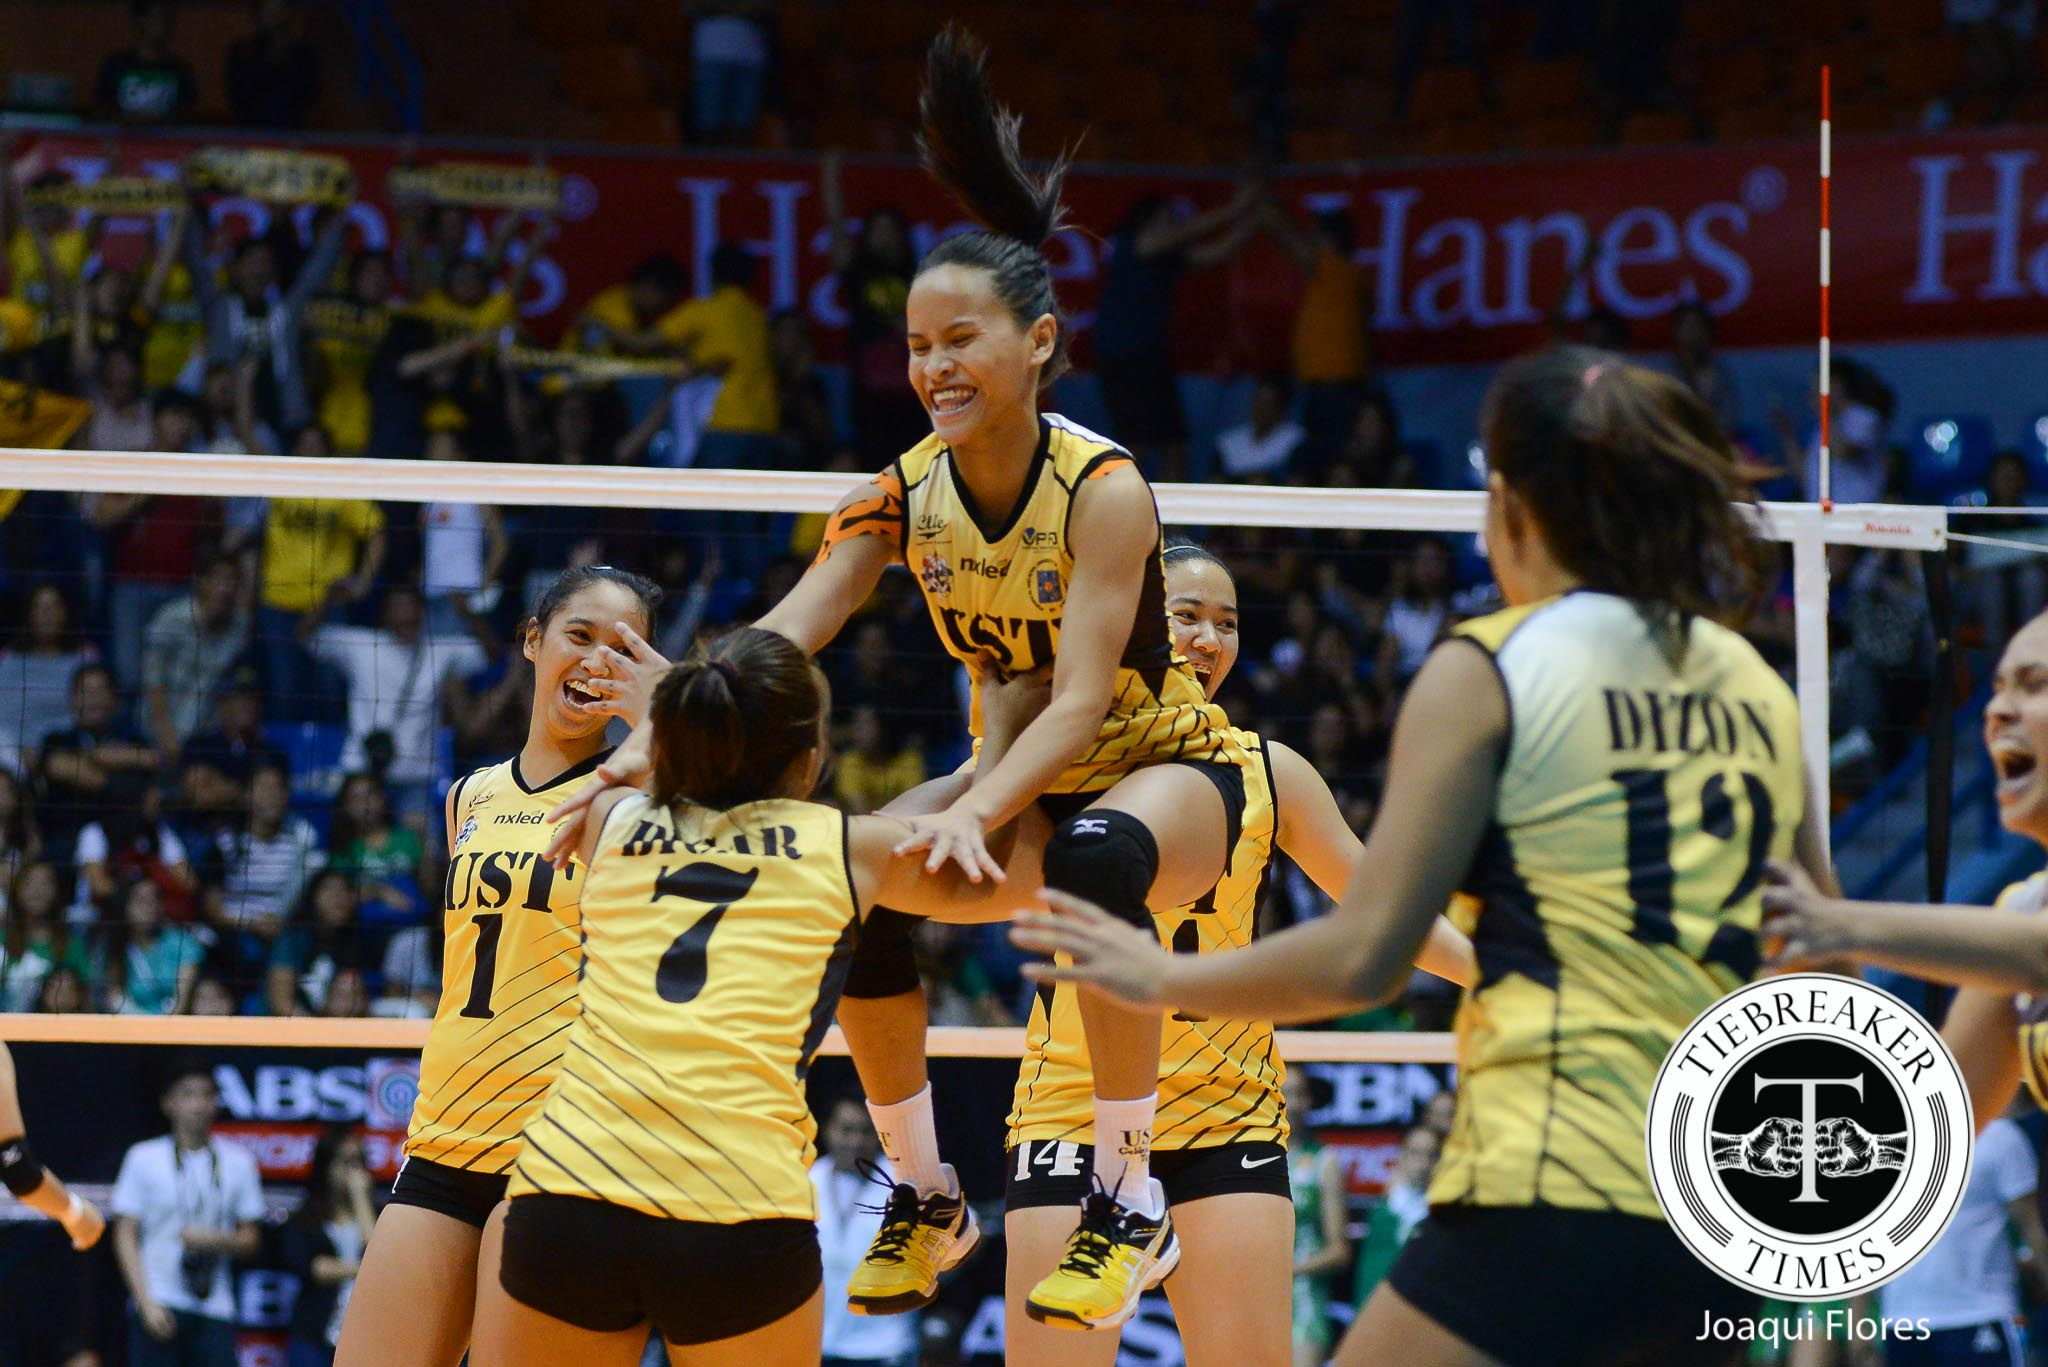 Philippine Sports News - Tiebreaker Times Cherry Rondina: the embodiment of Tiger Power News UAAP UST Volleyball  UST Women's Volleyball UAAP Season 78 Women's Volleyball UAAP Season 78 Cherry Rondina